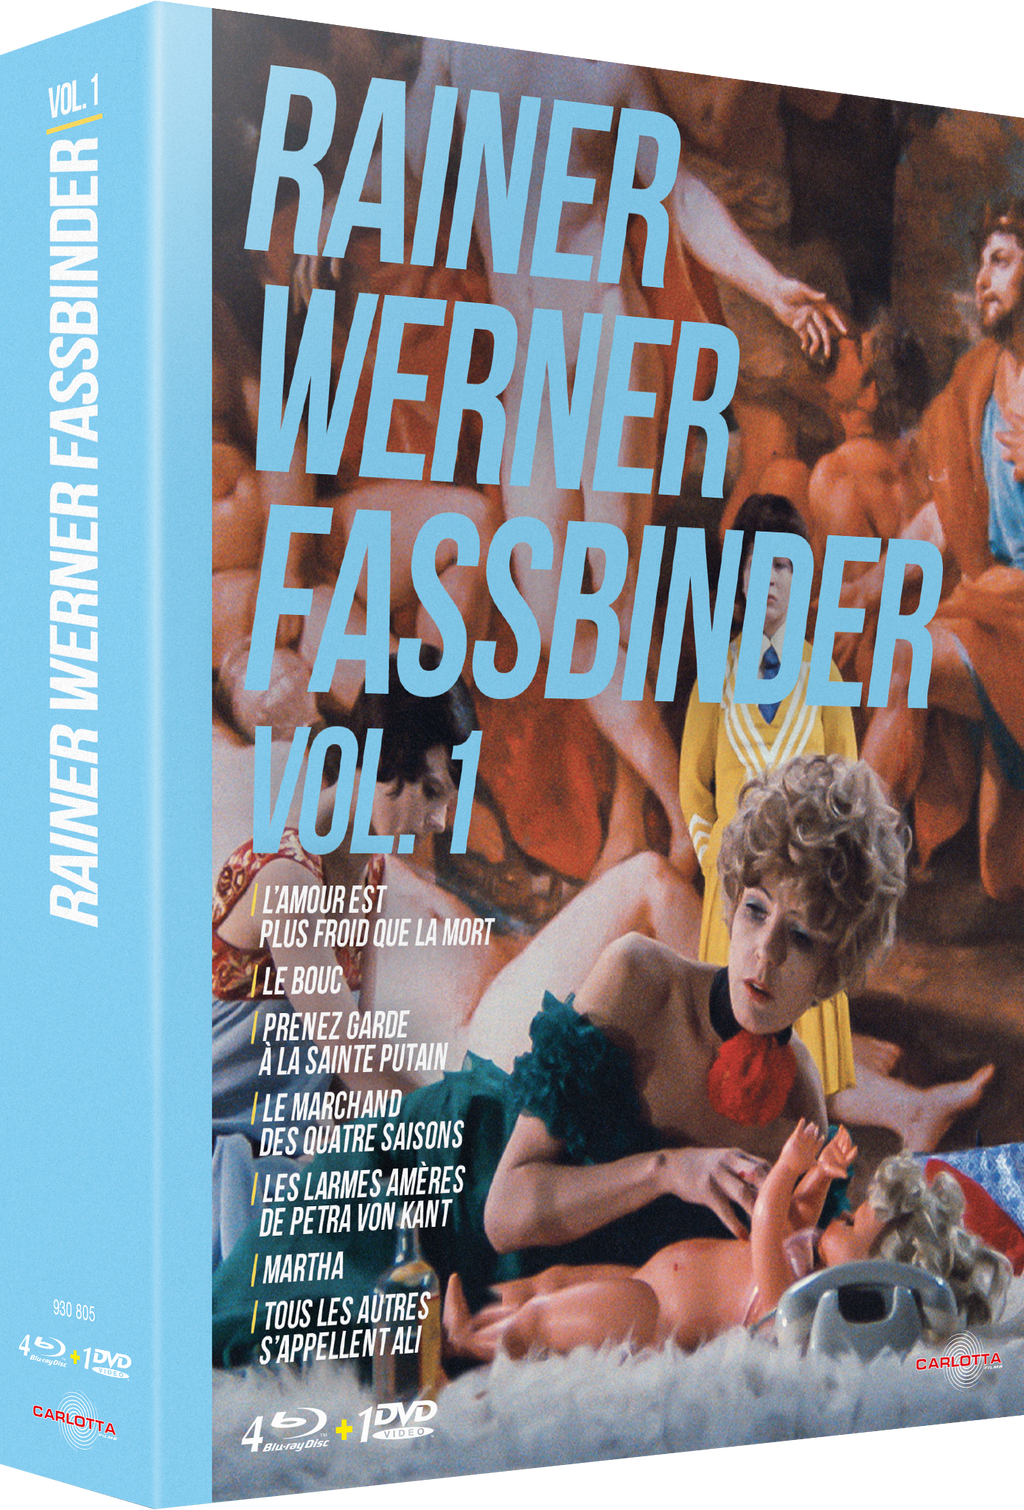 Coffret Rainer Werner Fassbinder Vol. 1 - Blu-ray - CARLOTTA FILMS - La Boutique